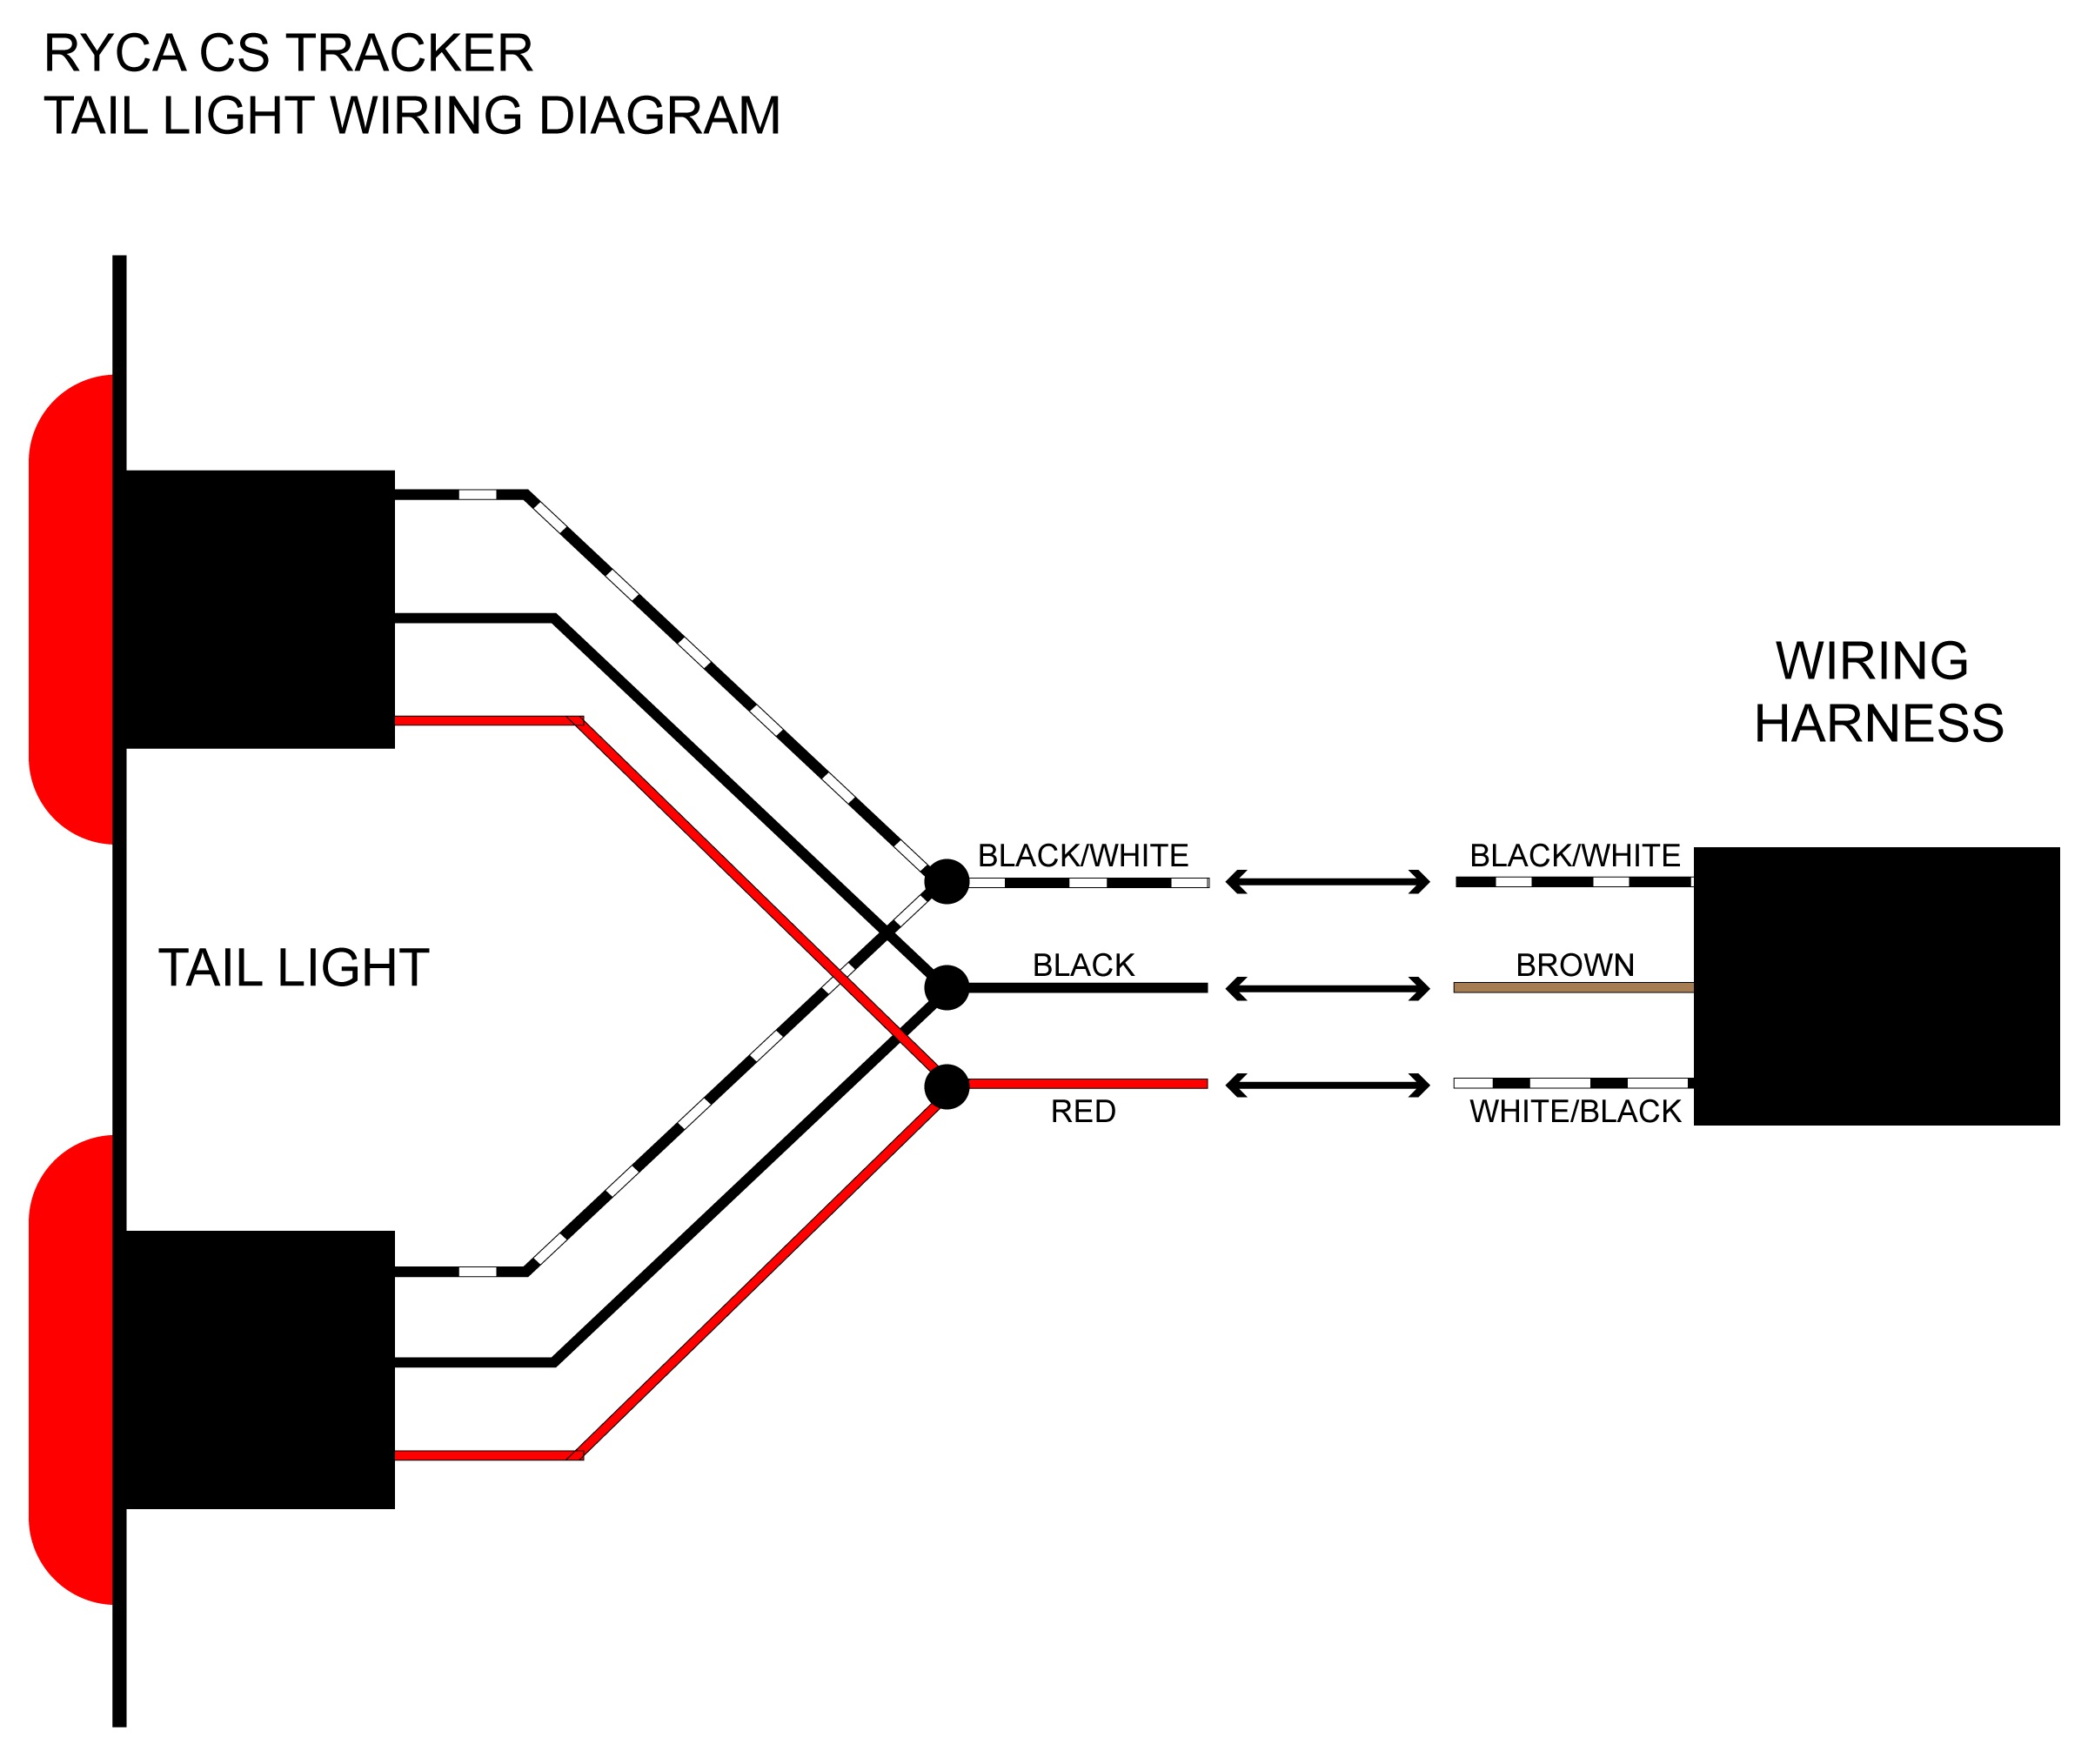 Led Tail Light Wiring Diagram - Wiring Diagrams Thumbs - Trailer Led Light Wiring Diagram